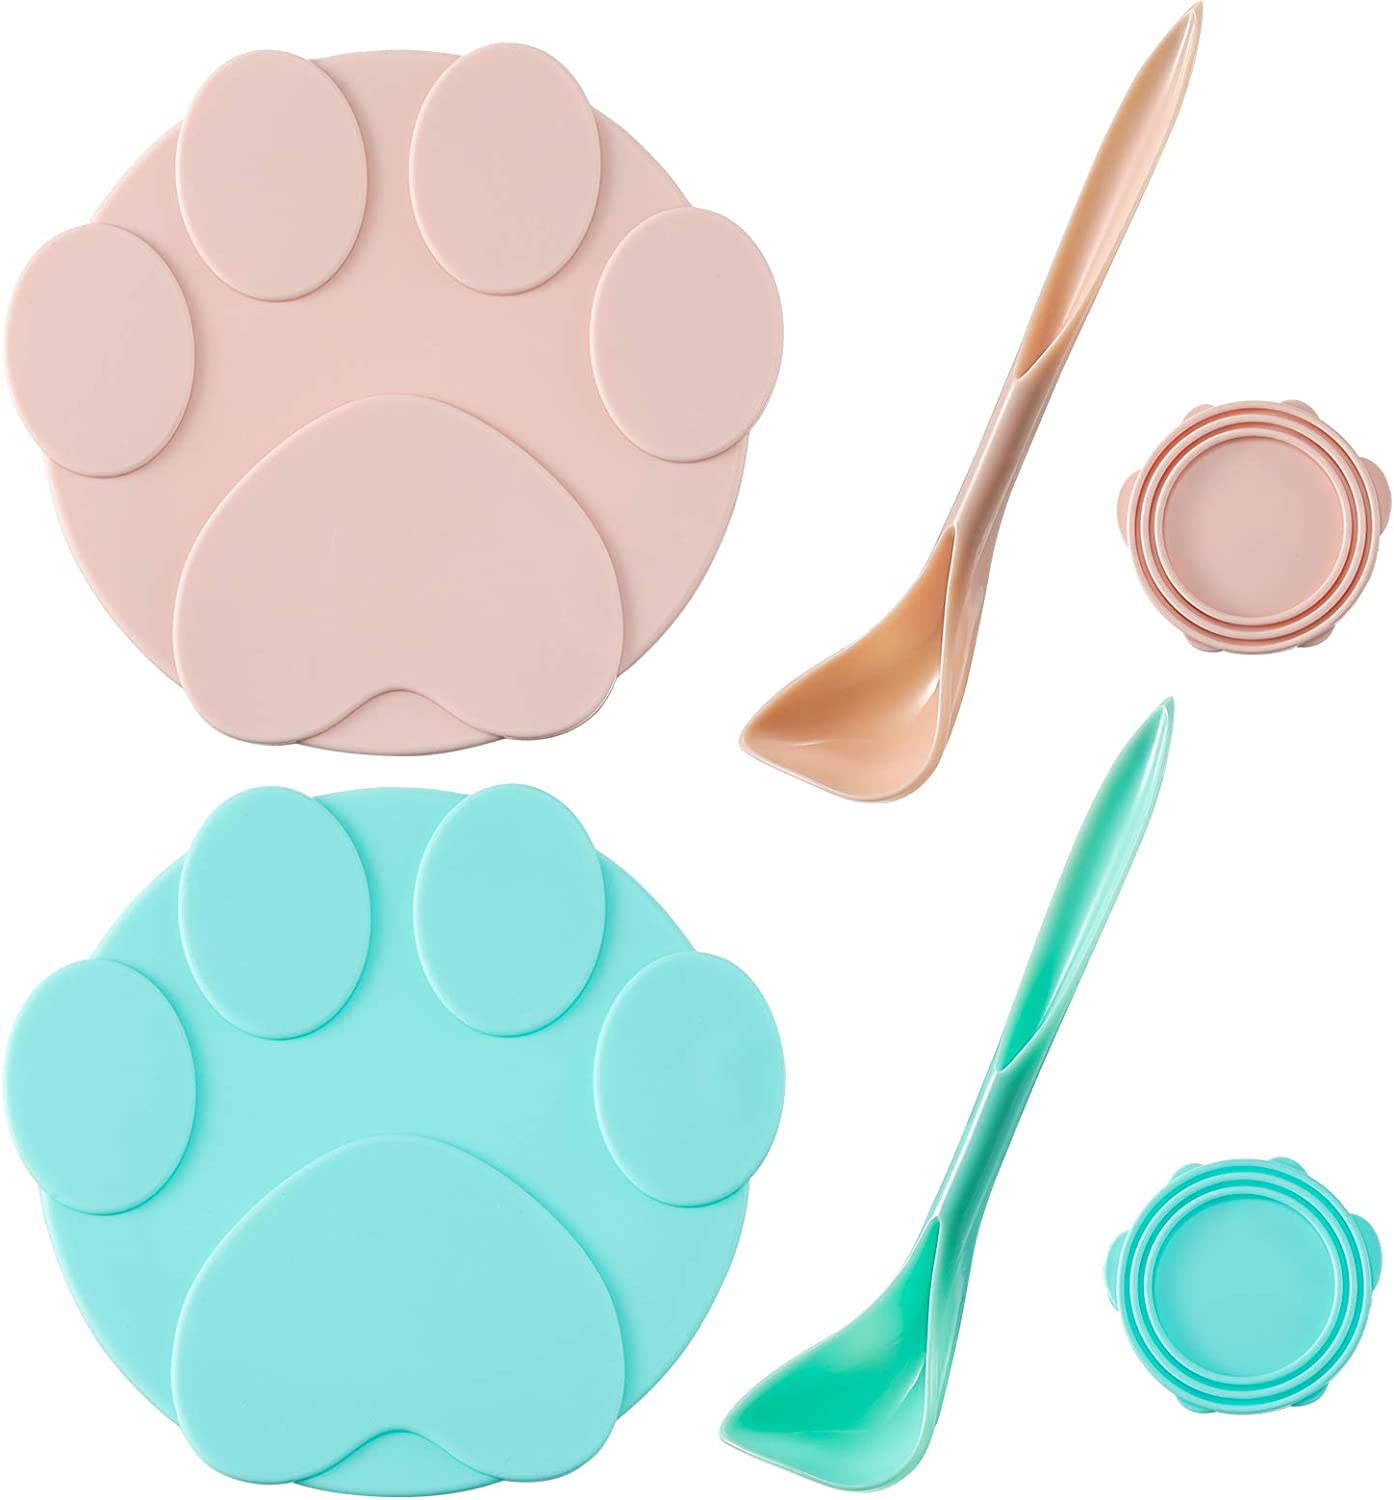 2 Pieces Cute Pet Food Can Lids with 2 Spoons, Silicone Can Lids Covers for Dog and Cat Food, Universal Silicone Cat Food Can Lids 1 Fit 3 Standard Size, Pink and Blue